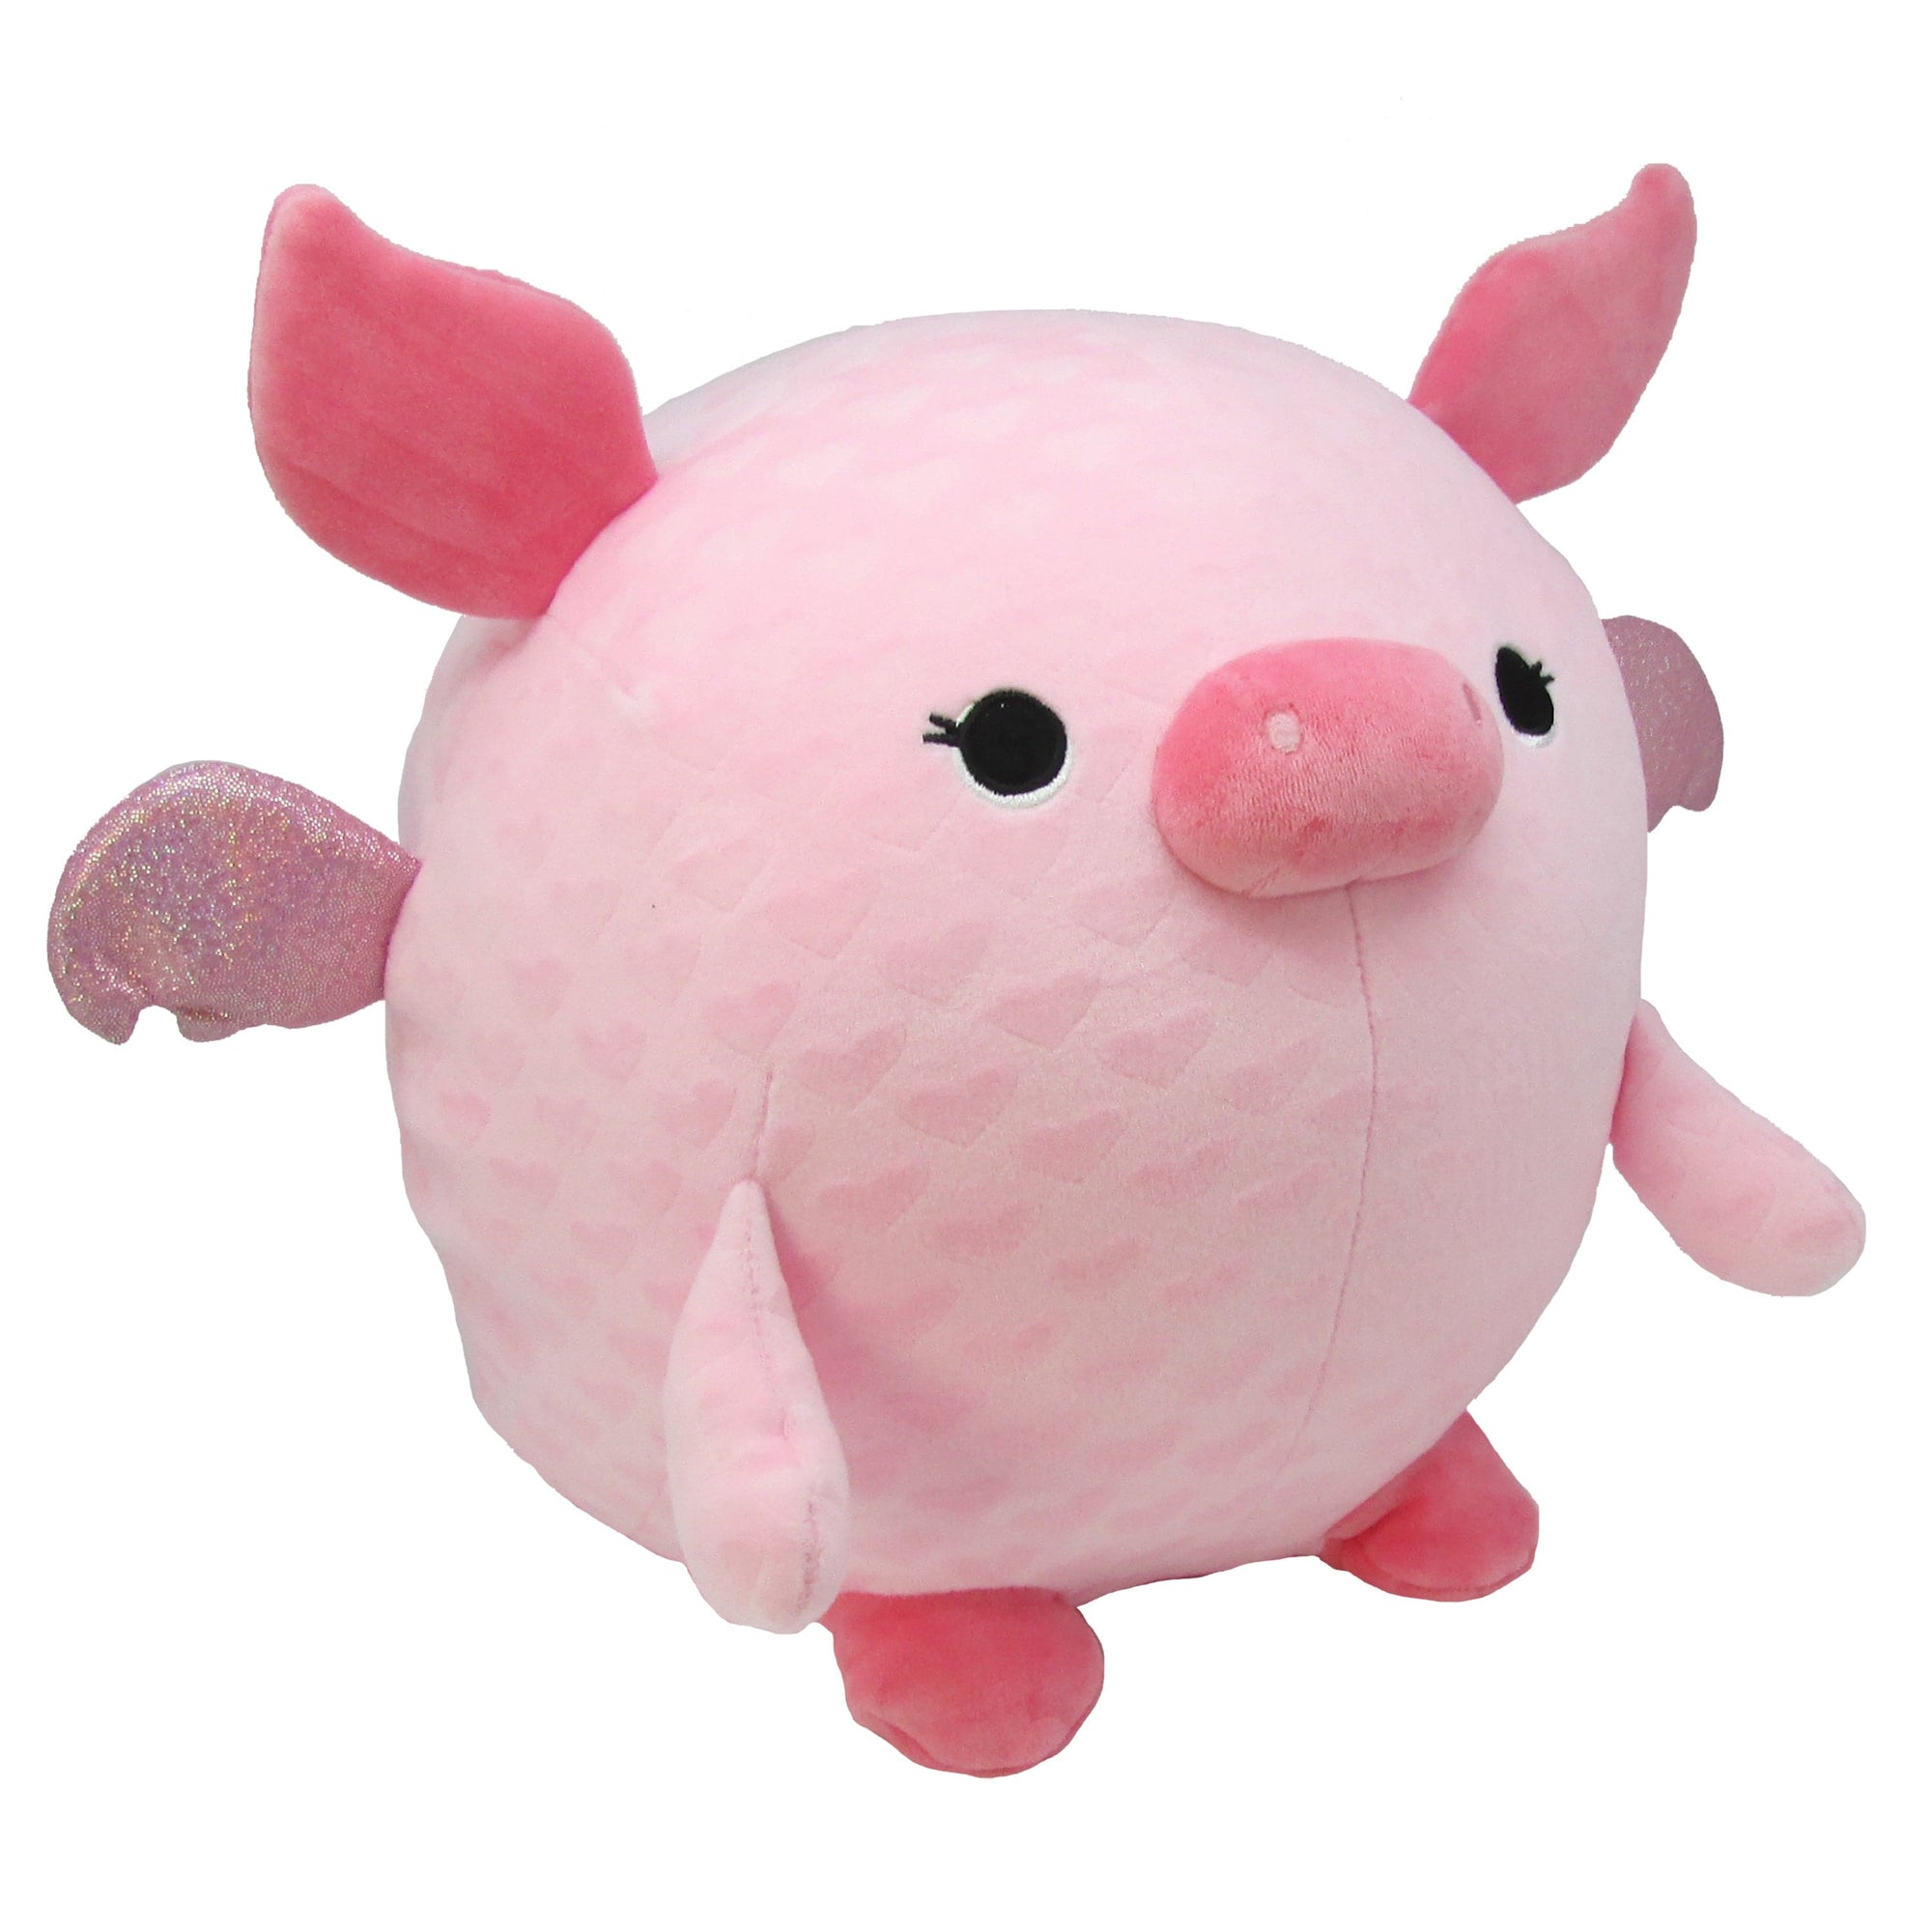 Cuddle Pal - Round Huggable Lucy the Pig